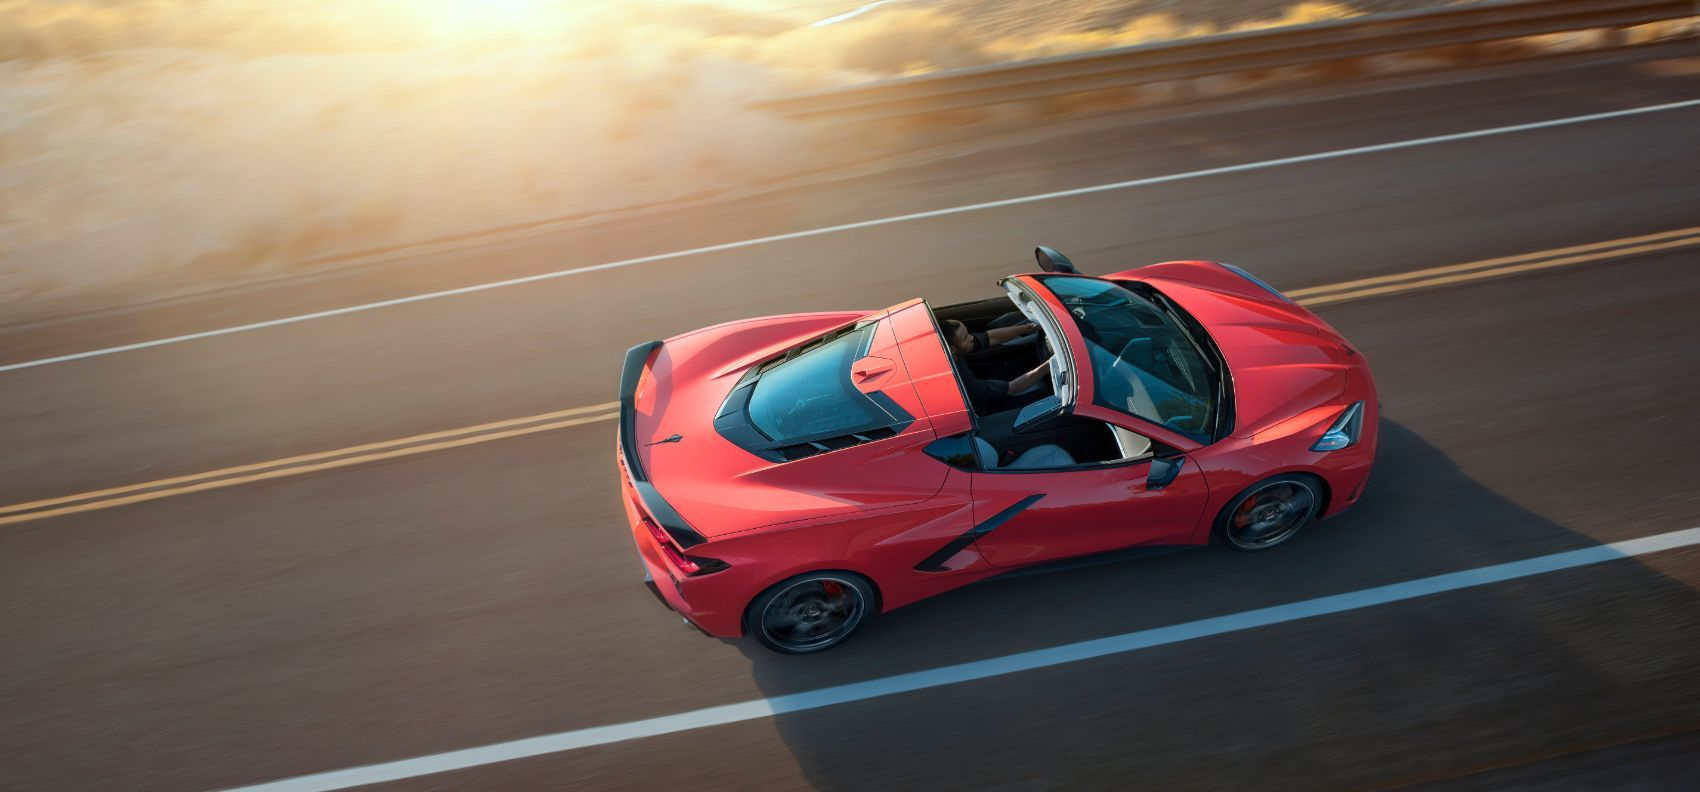 2020 Chevrolet Corvette Stingray 005